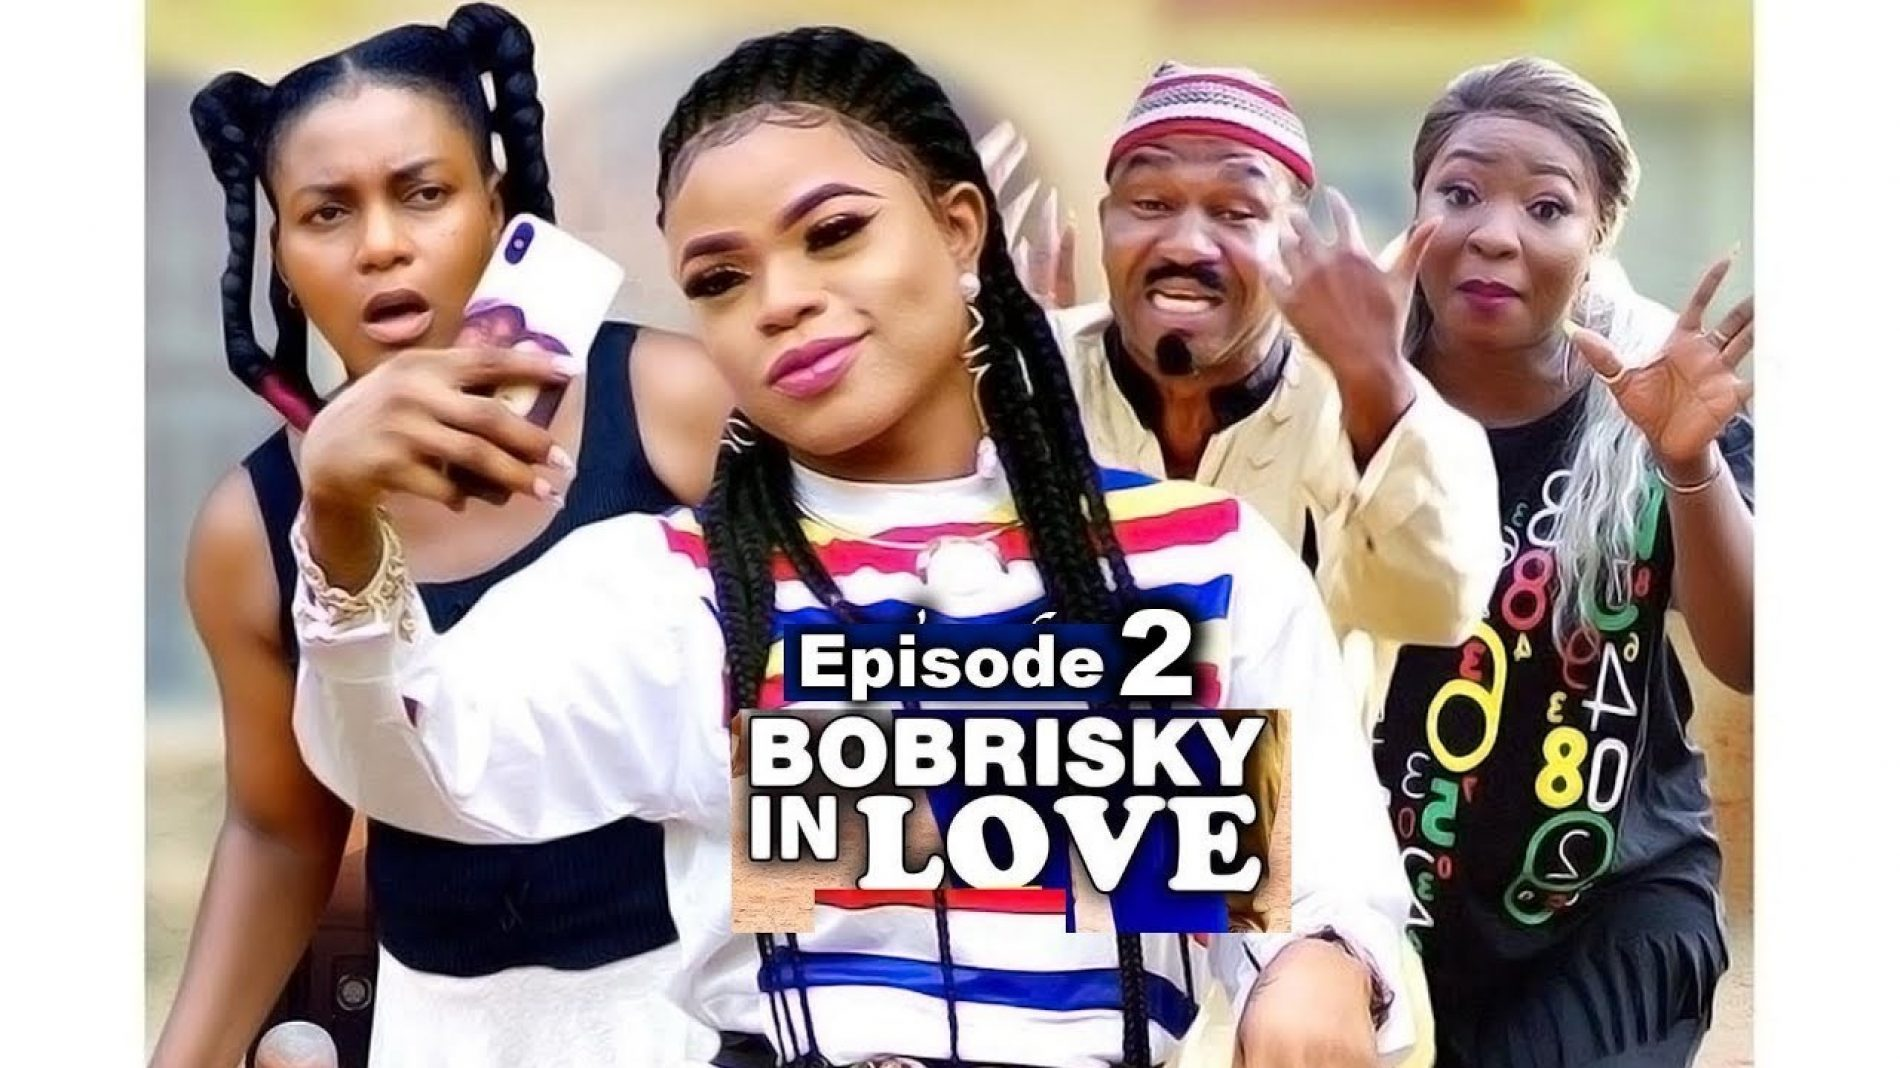 Nigeria's films and video censors board has reportedly set up panels to ban Bobrisky movie